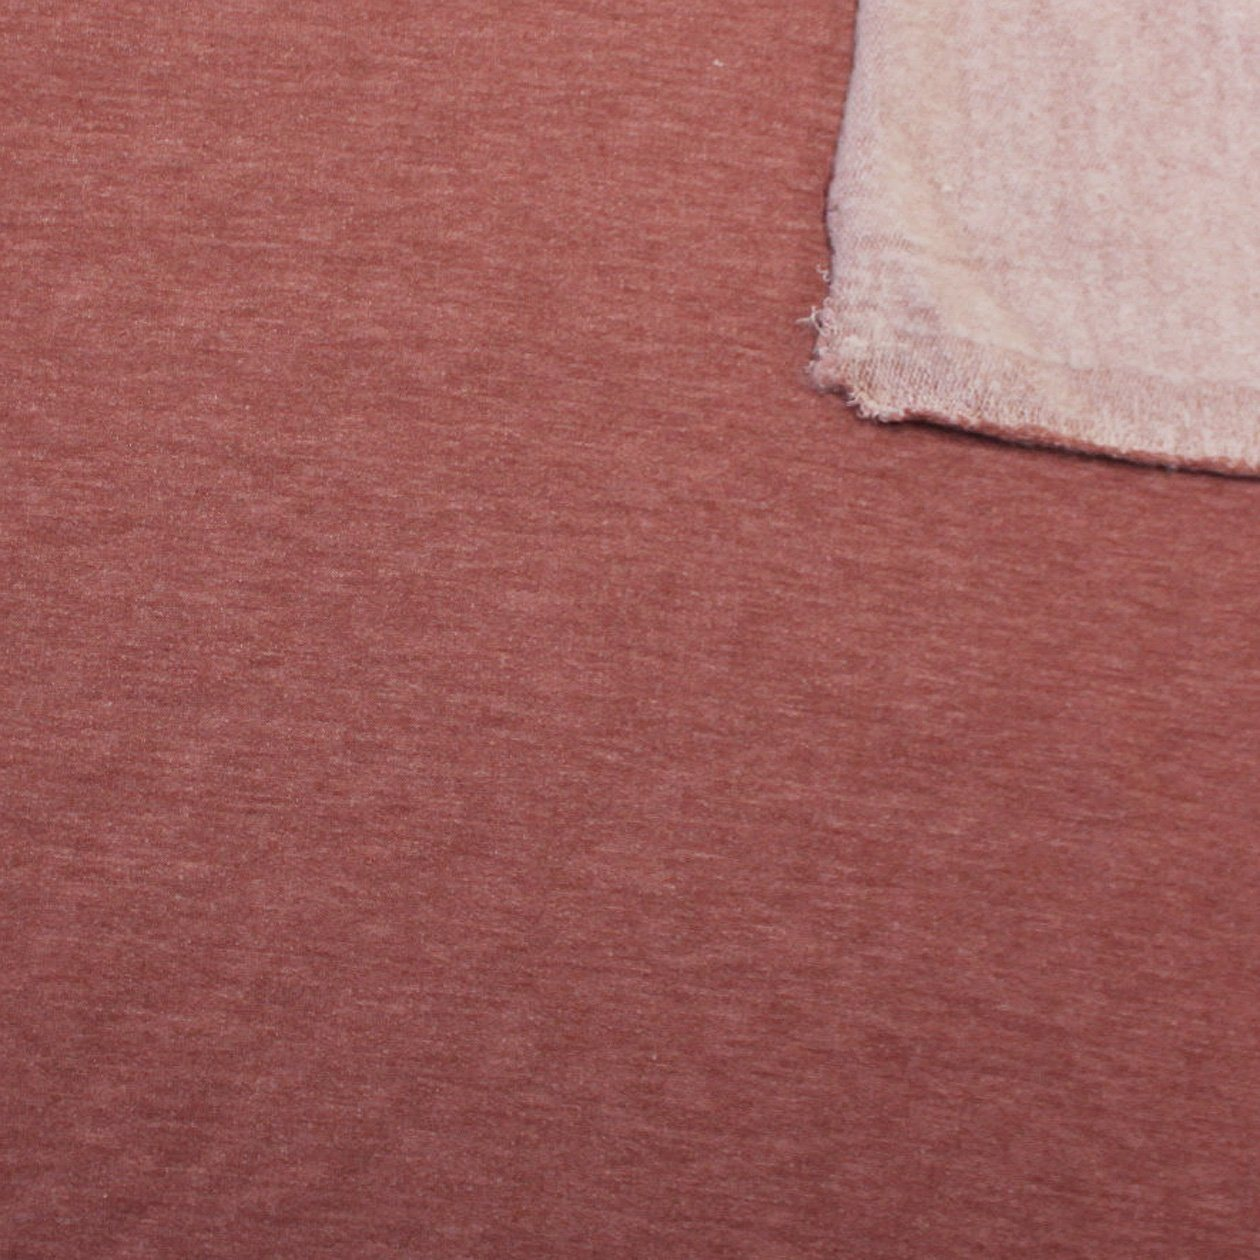 Light Burgundy Marsala FLEECE Sweatshirt Knit Fabric - Raspberry Creek Fabrics Knit Fabric